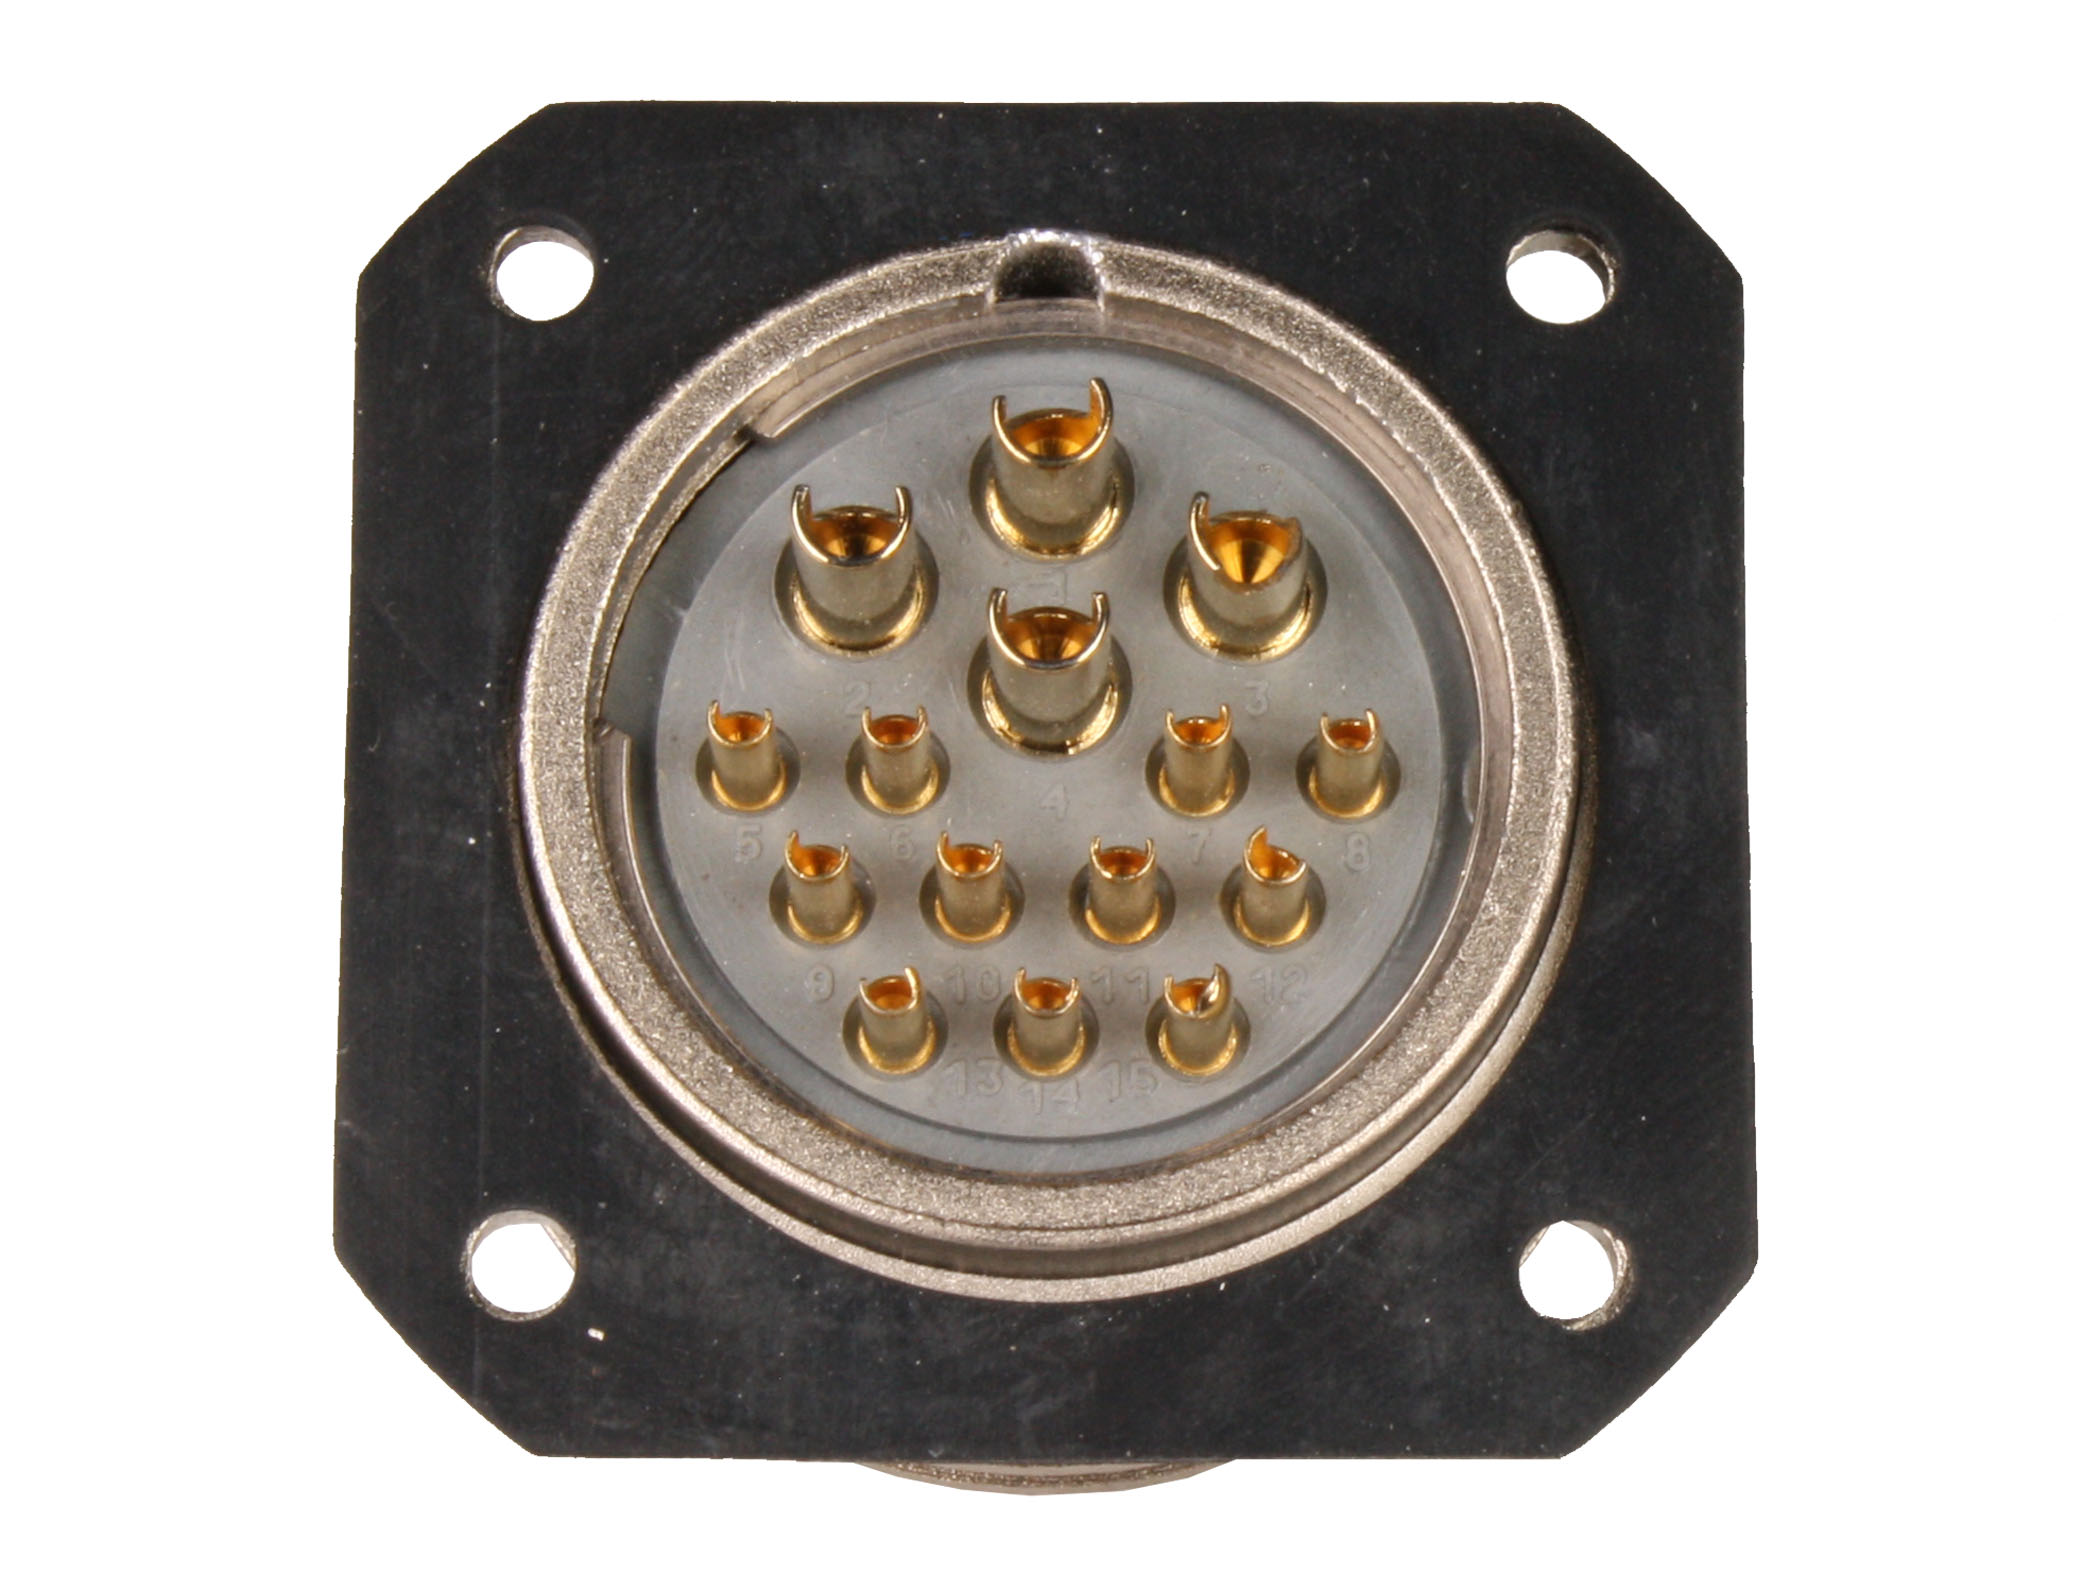 BM30B15 (9202315KP) - 15 contacts male receptacle size 30 circular connector